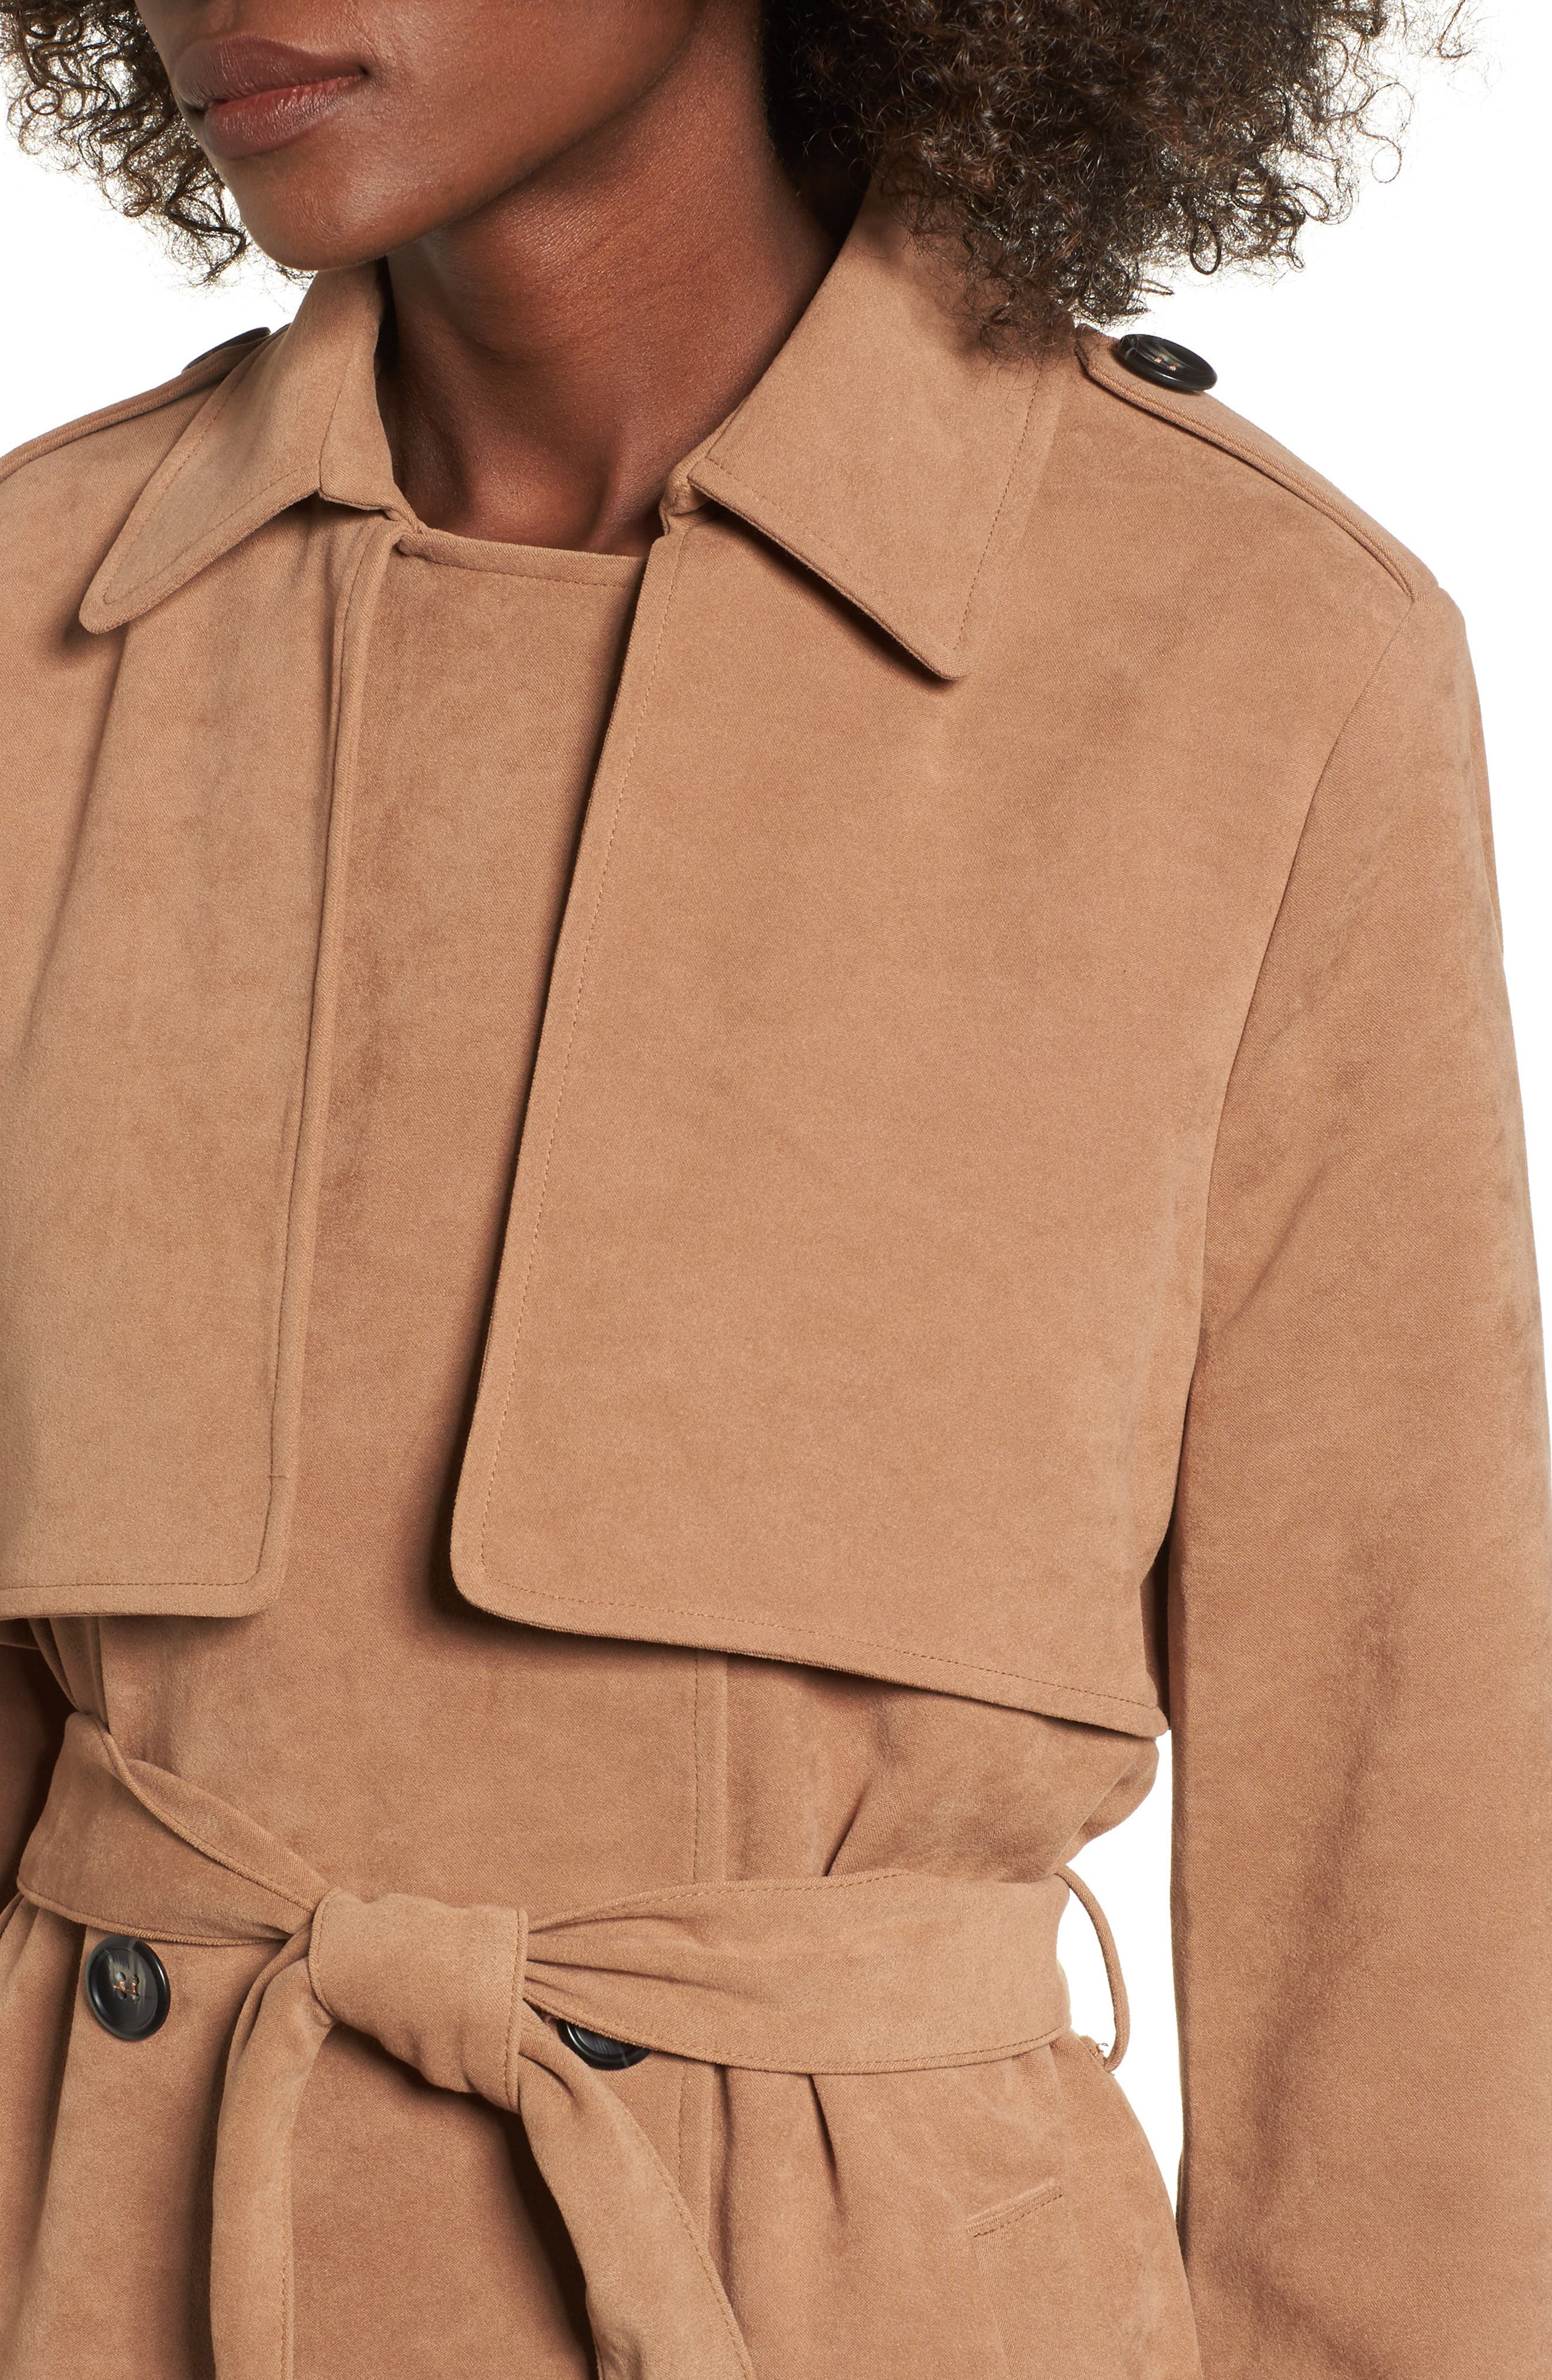 Double-Breasted Trench Coat,                             Alternate thumbnail 4, color,                             250